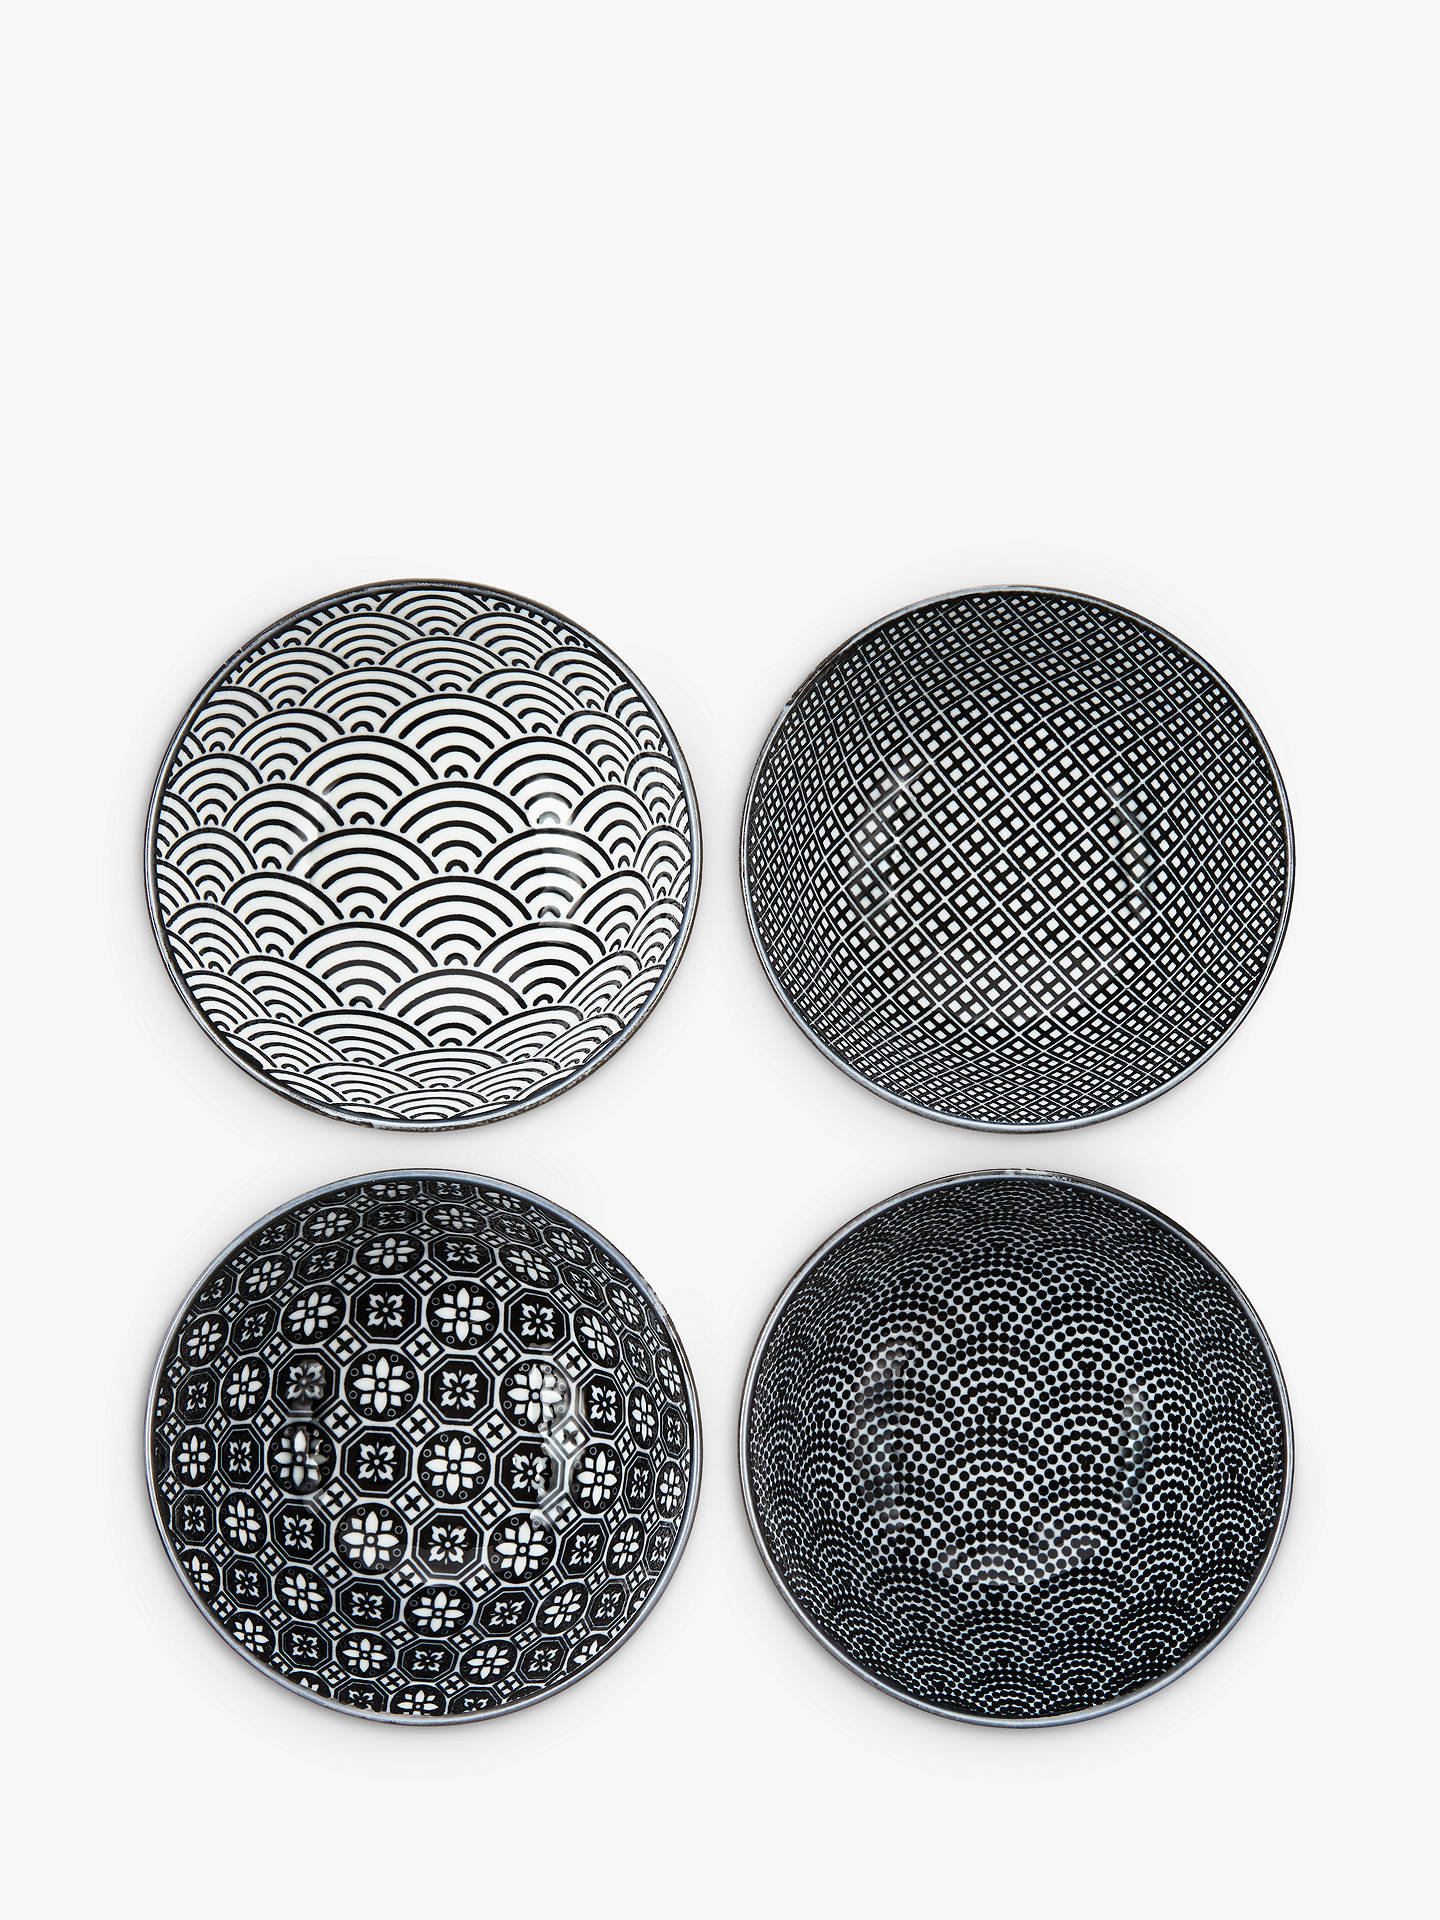 Tokyo Design Studio Small Bowls Mixed Set Of 4 Online At Johnlewis